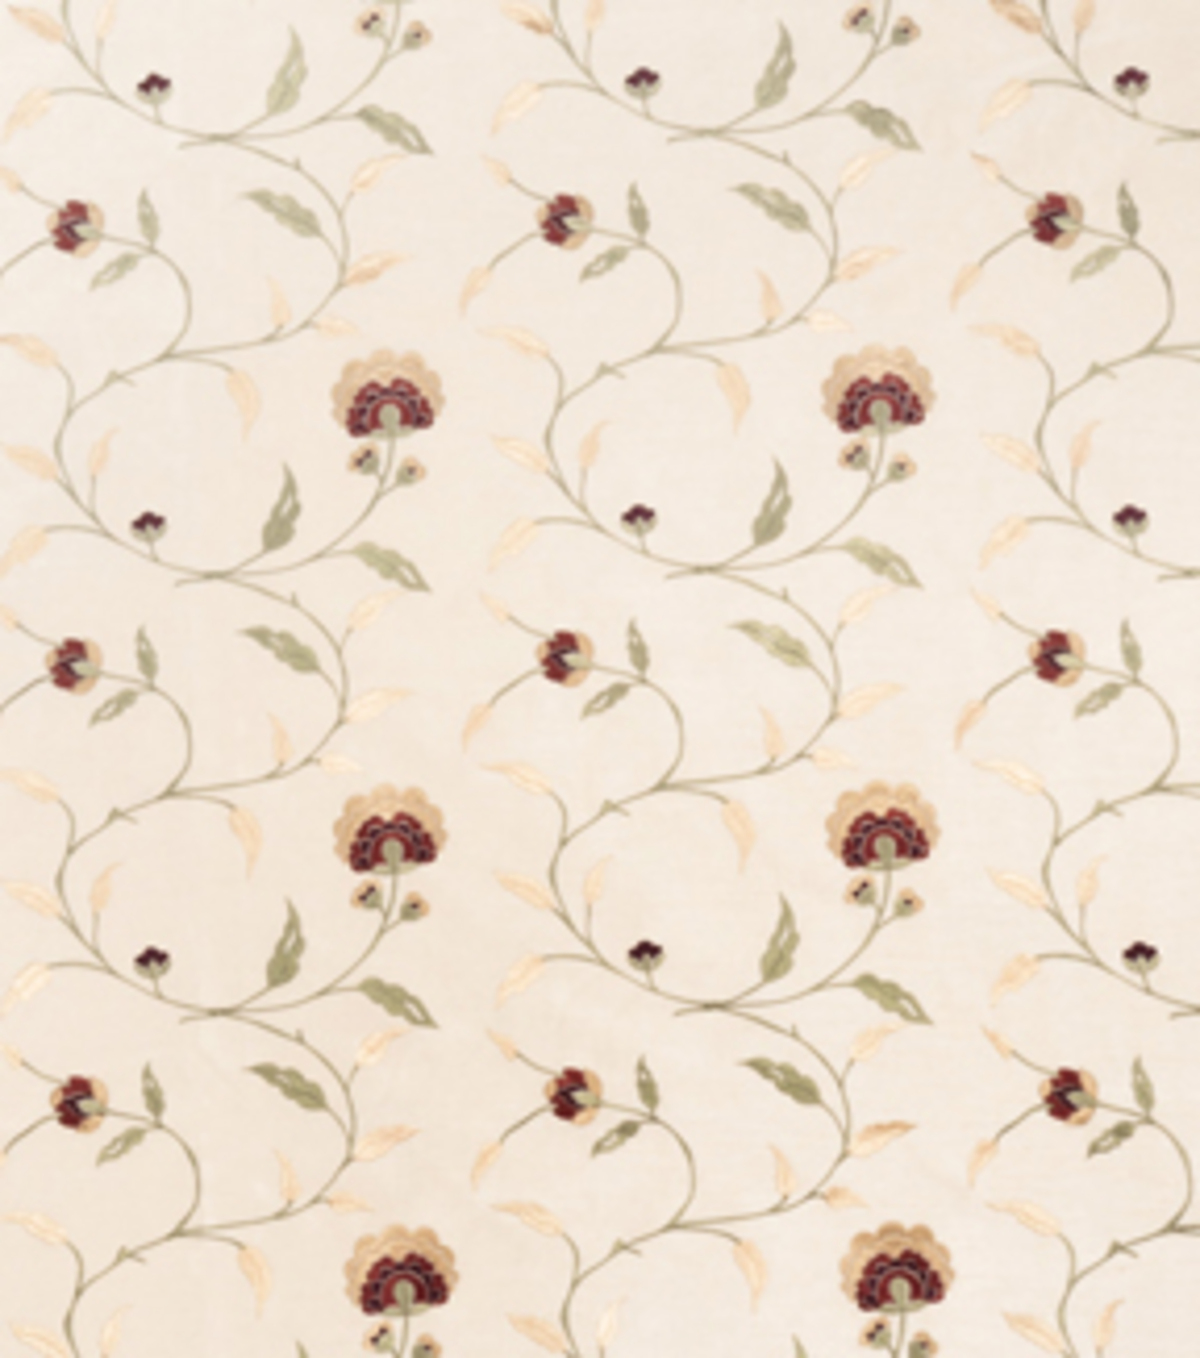 Home Decor 8\u0022x8\u0022 Fabric Swatch-Print Fabric Eaton Square Caesar Beige